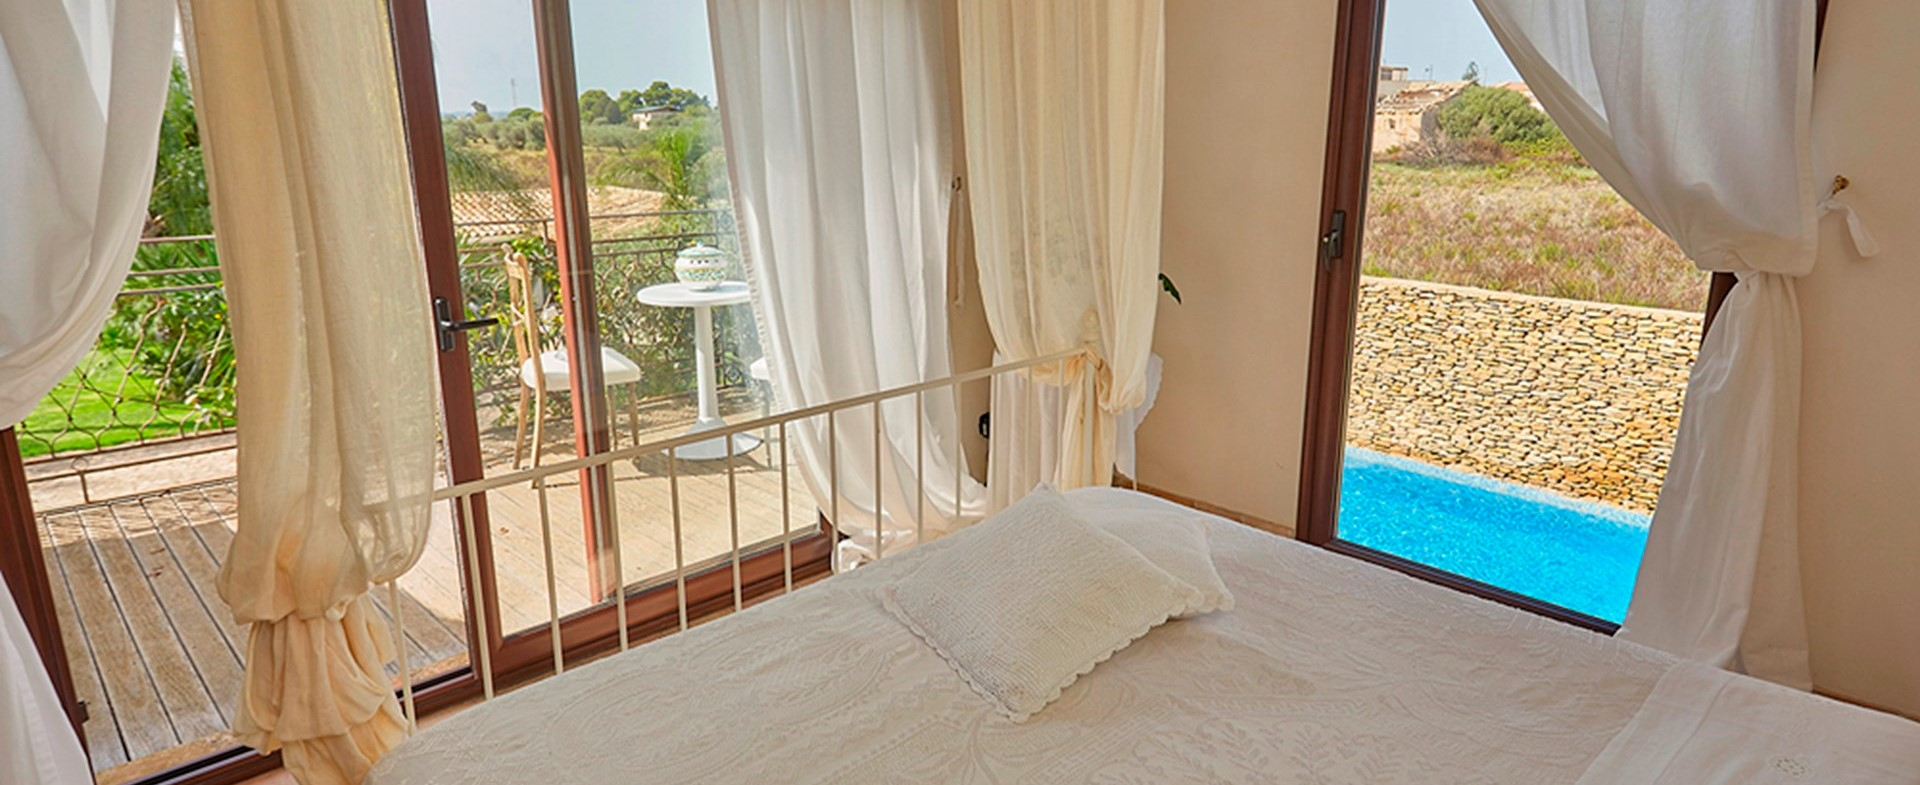 villa-selinunte-sicily-double-bedroom-2.